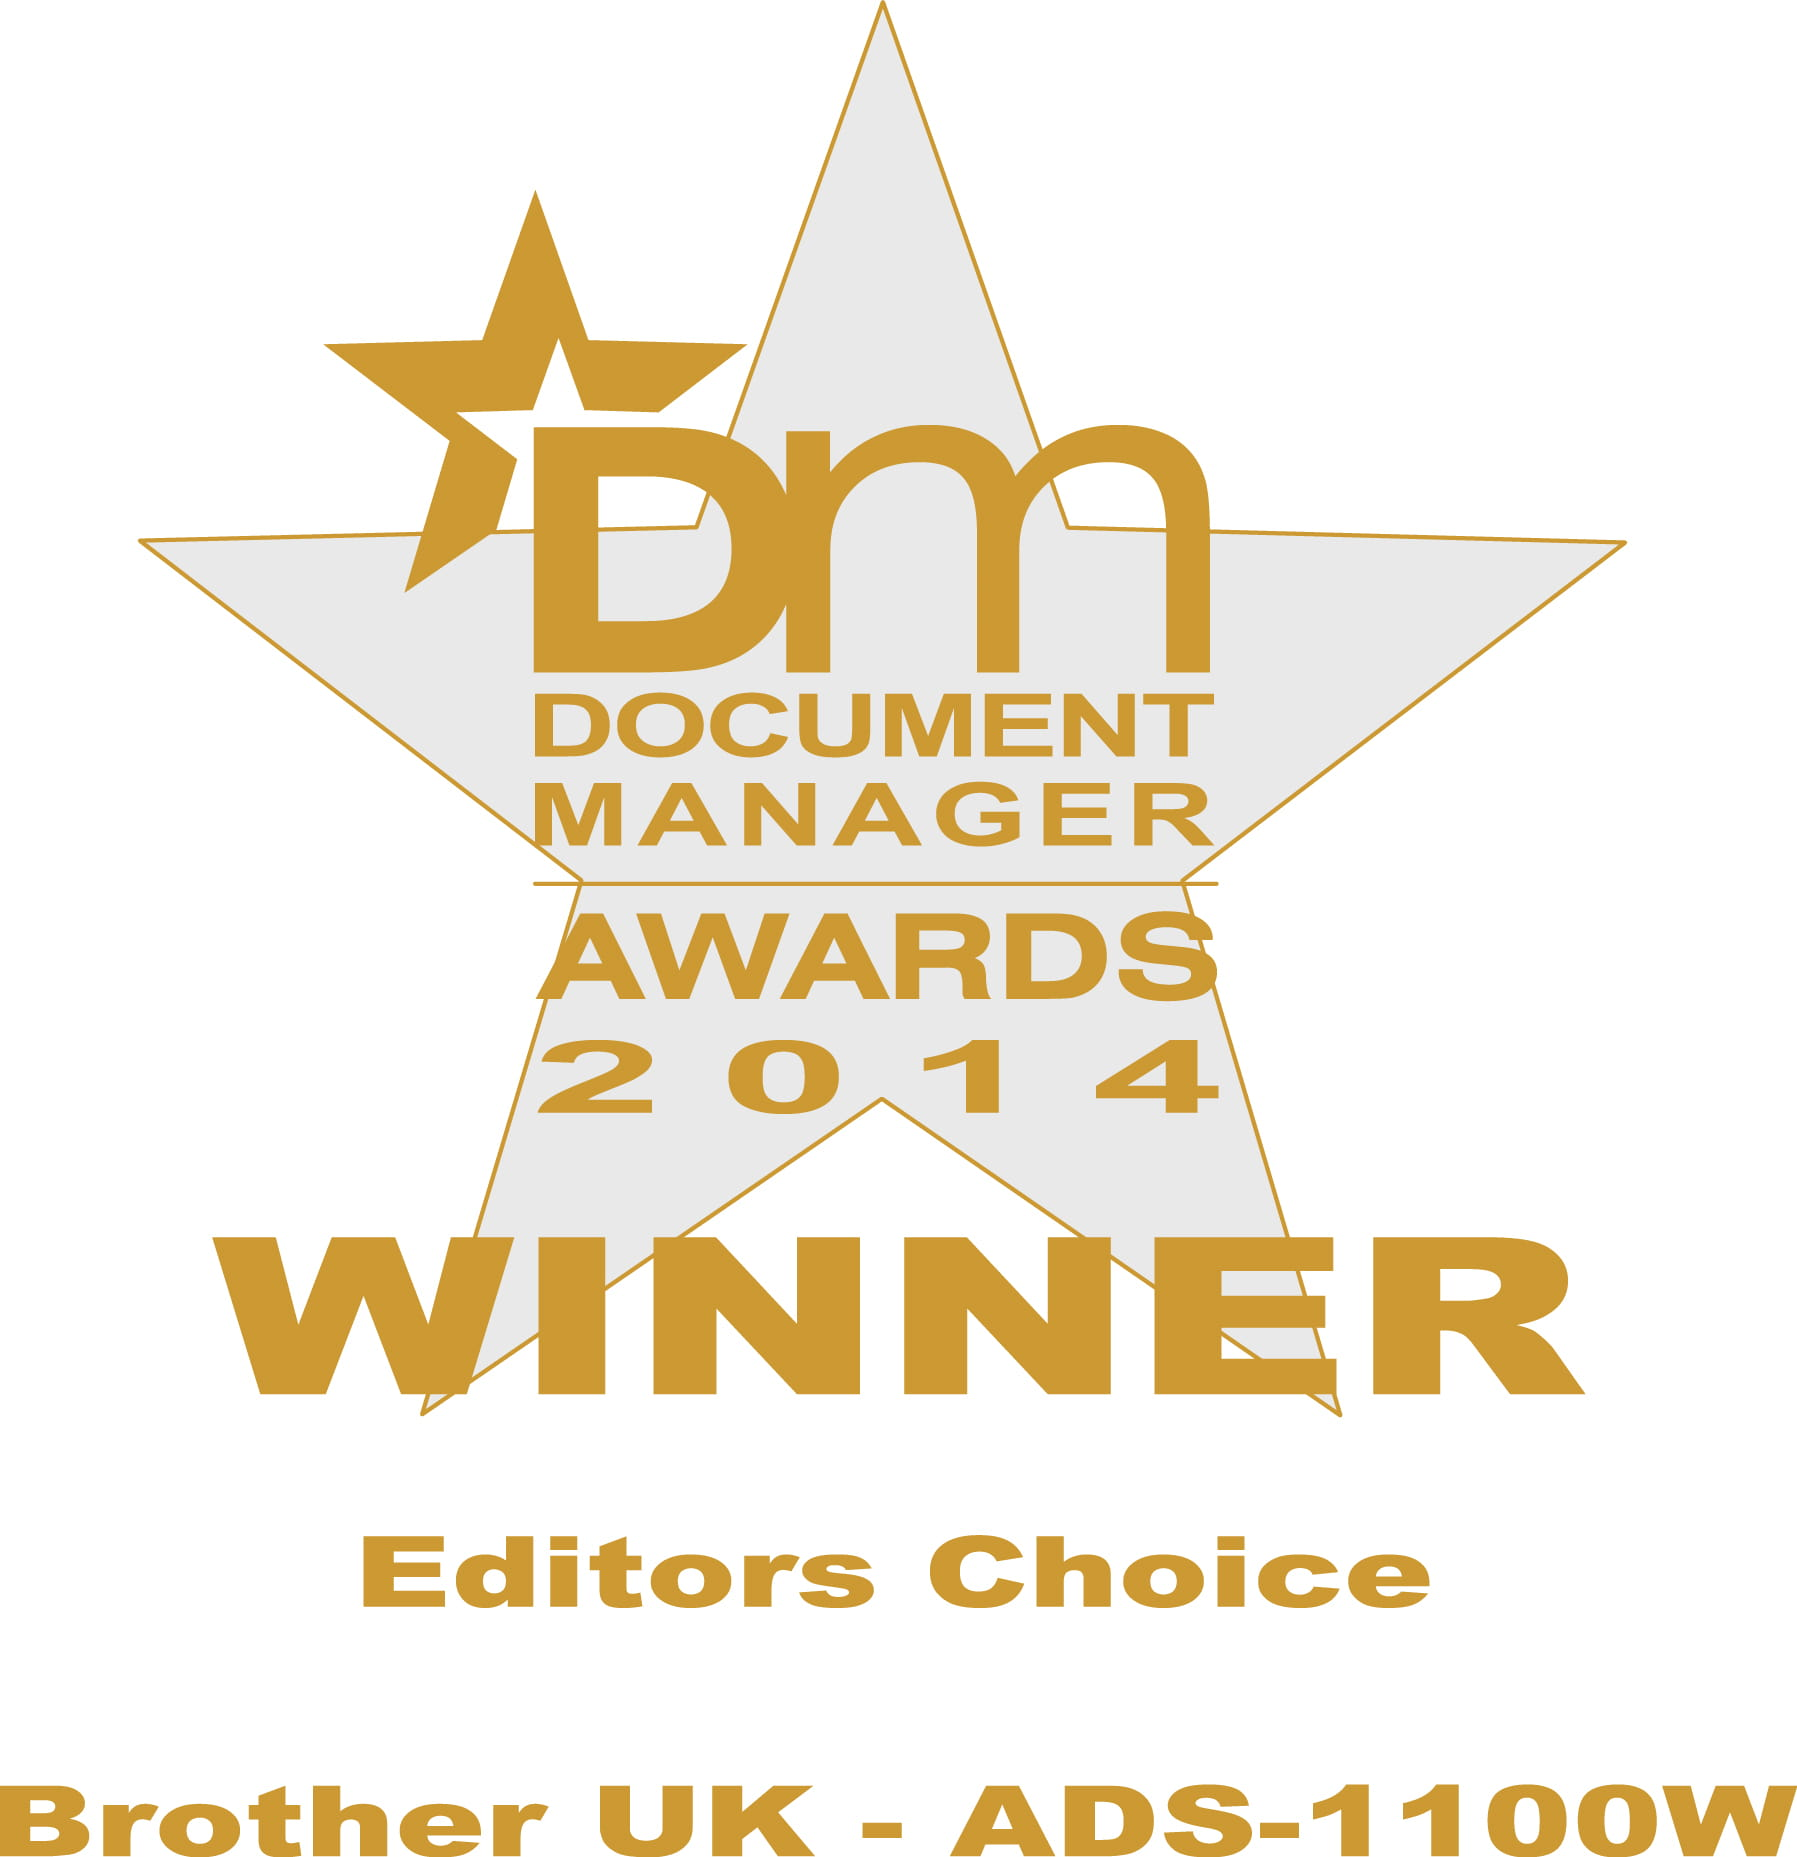 Editors Choice Winner